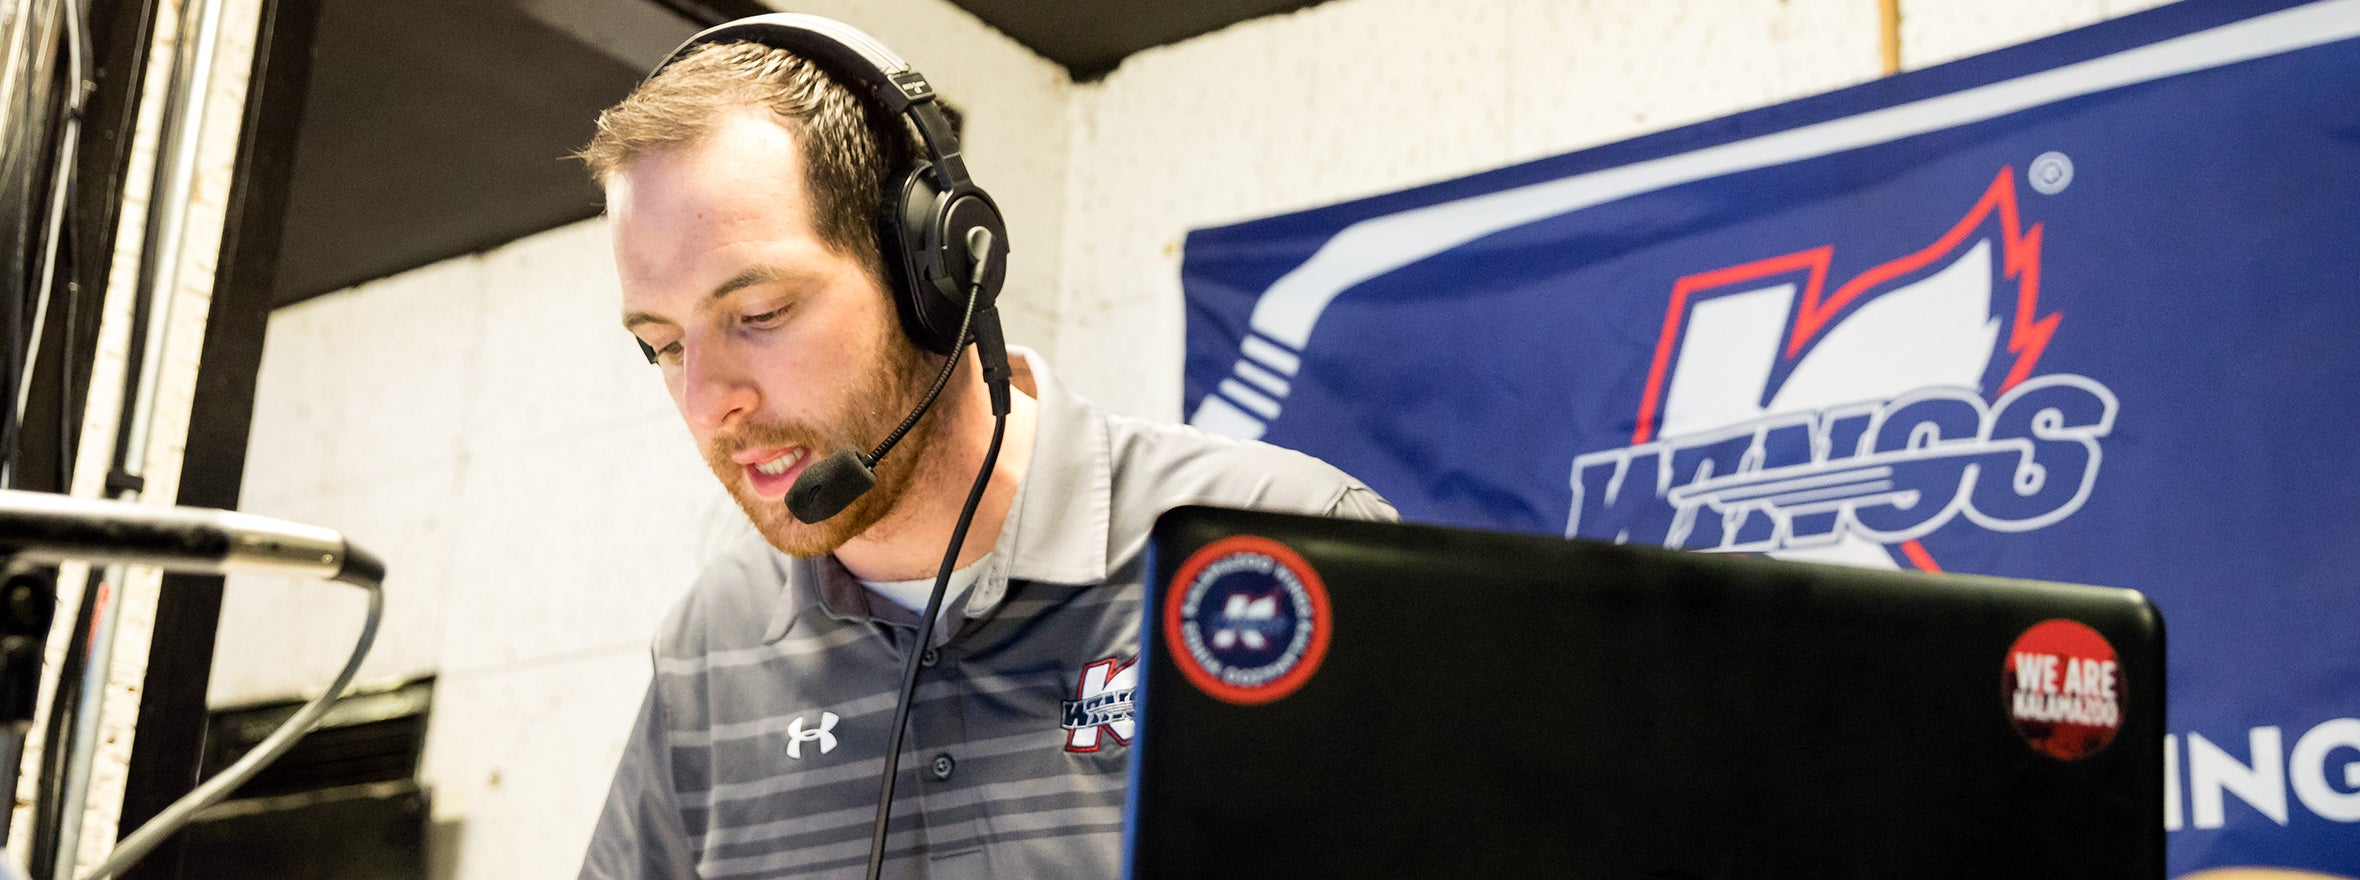 JOE ROBERTS ANNOUNCED AS NEW VOICE OF THE COMETS